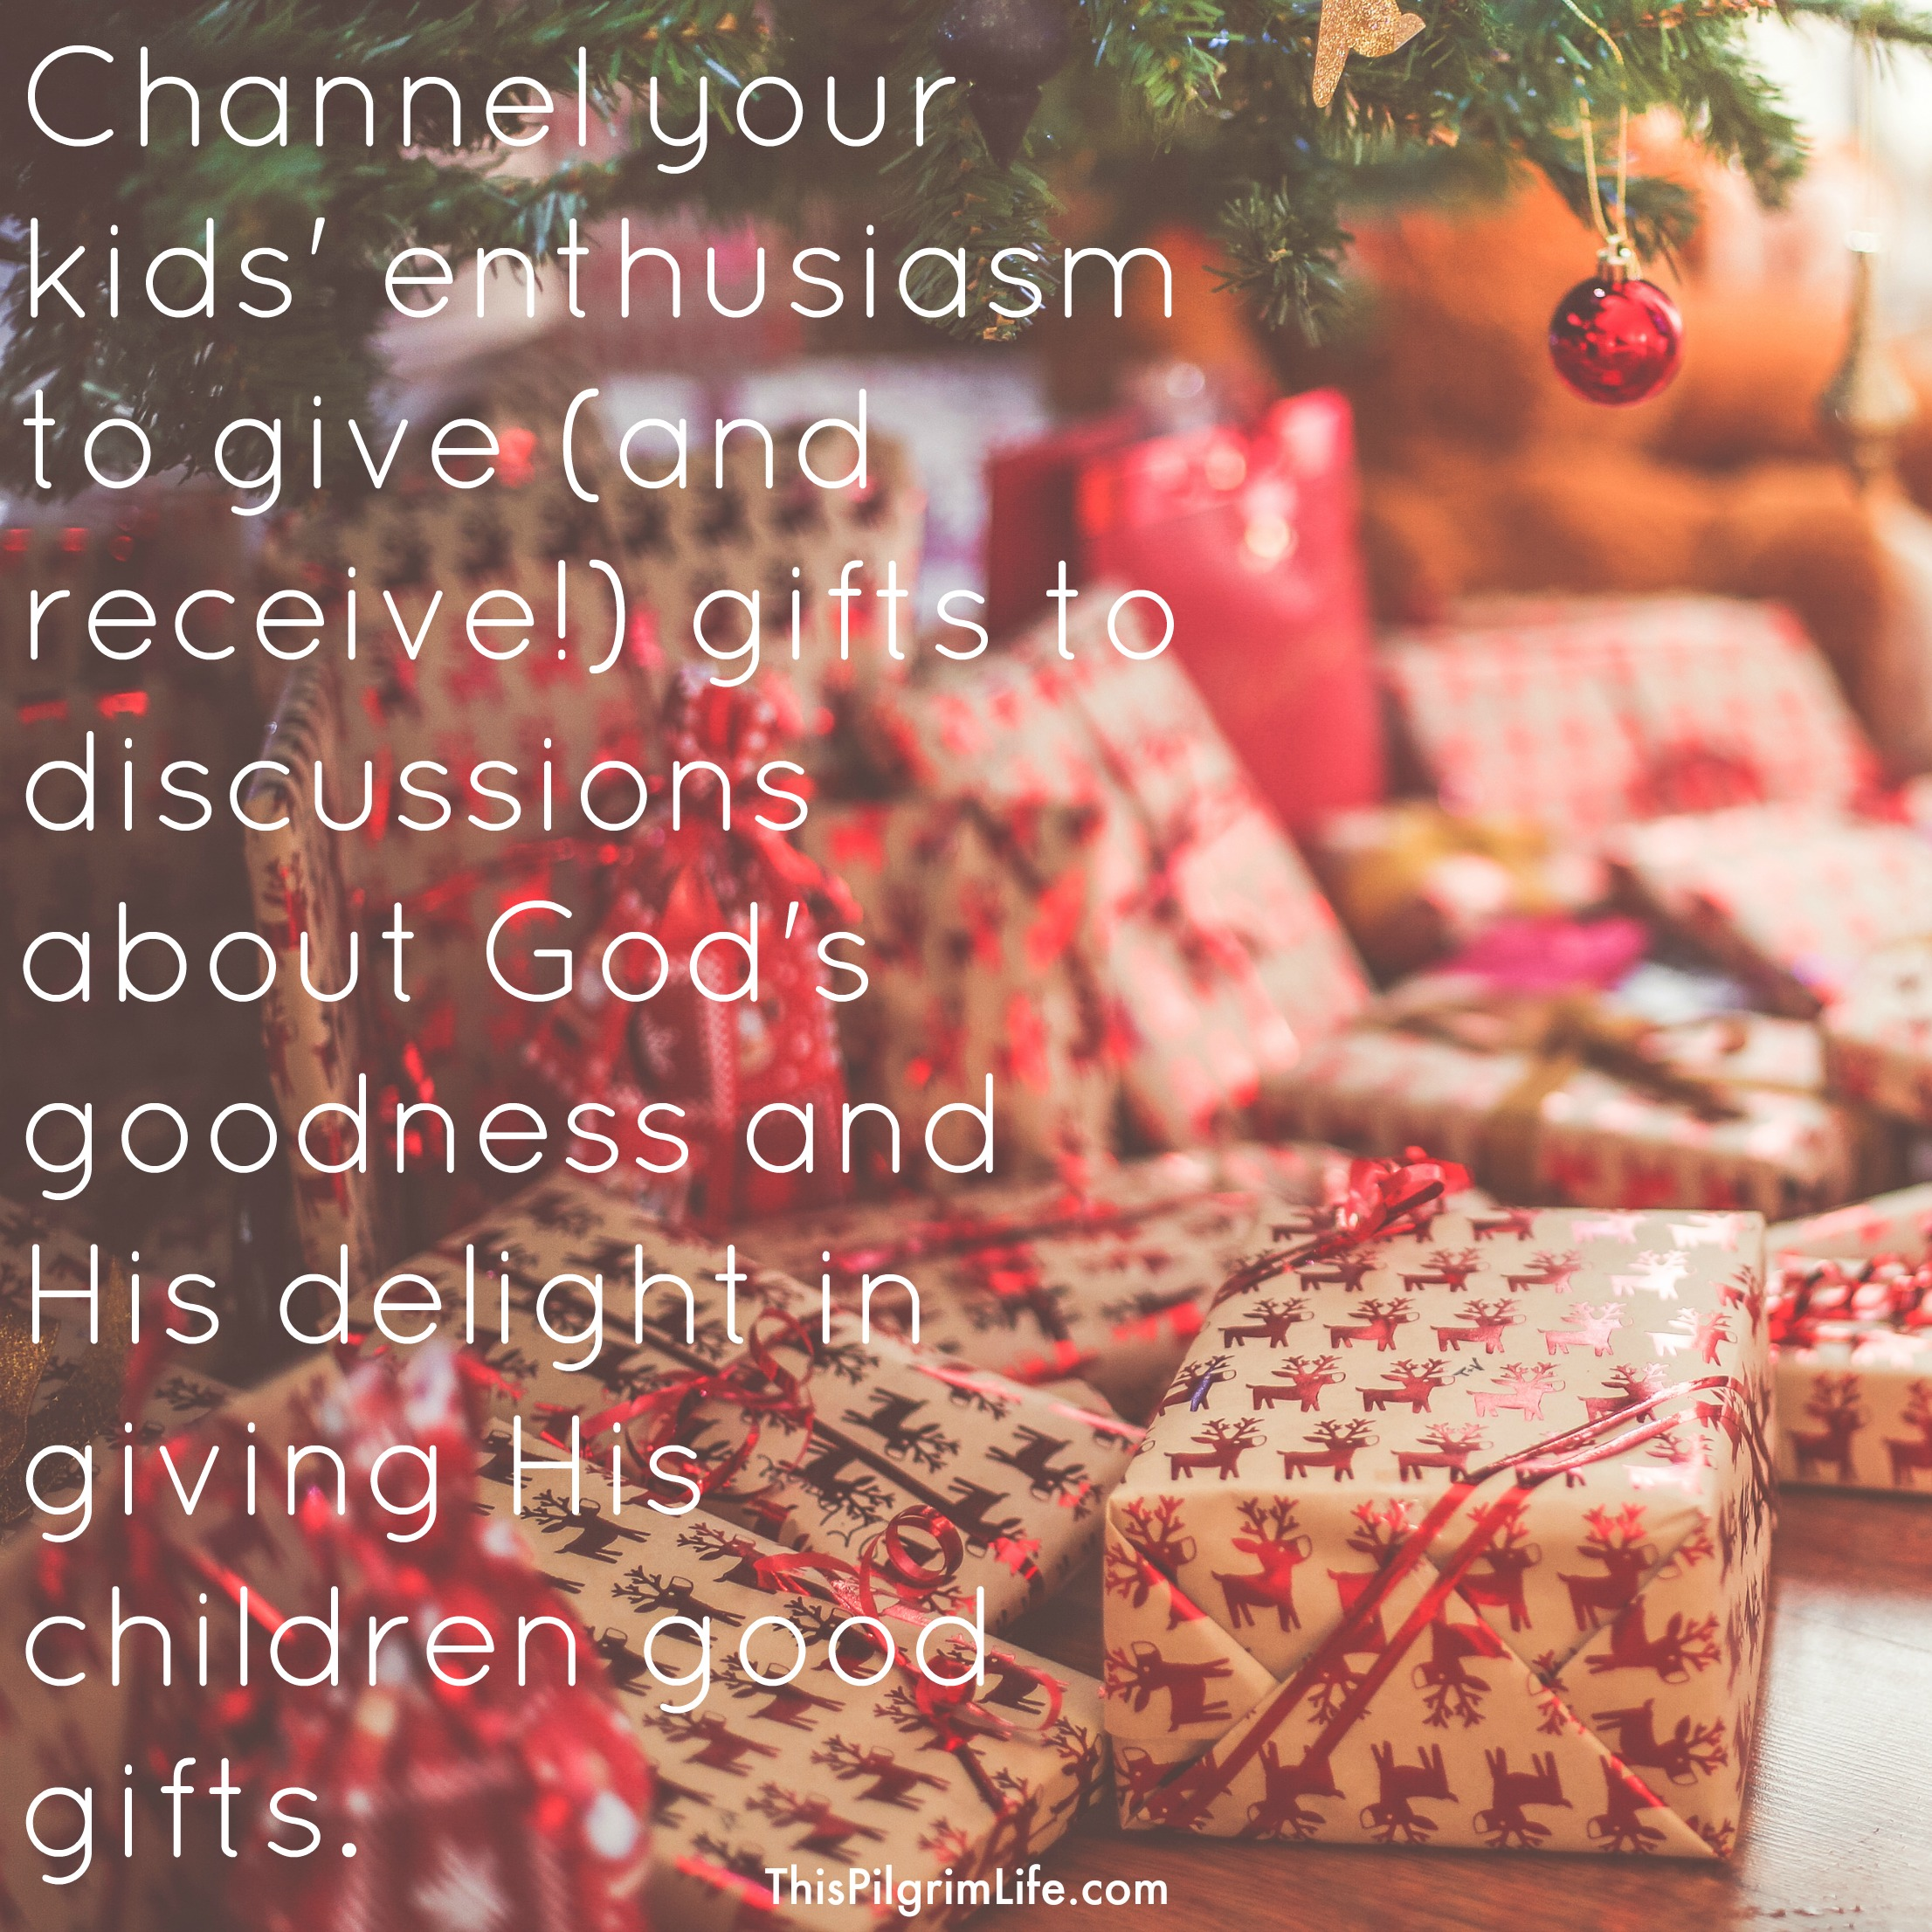 Channel your kids' enthusiasm to give (and receive!) gifts to discussions about God's goodness and His delight in giving His children good gifts. To help you get started, here are three verses we often use to teach our children about the generous and supreme giving nature of God.